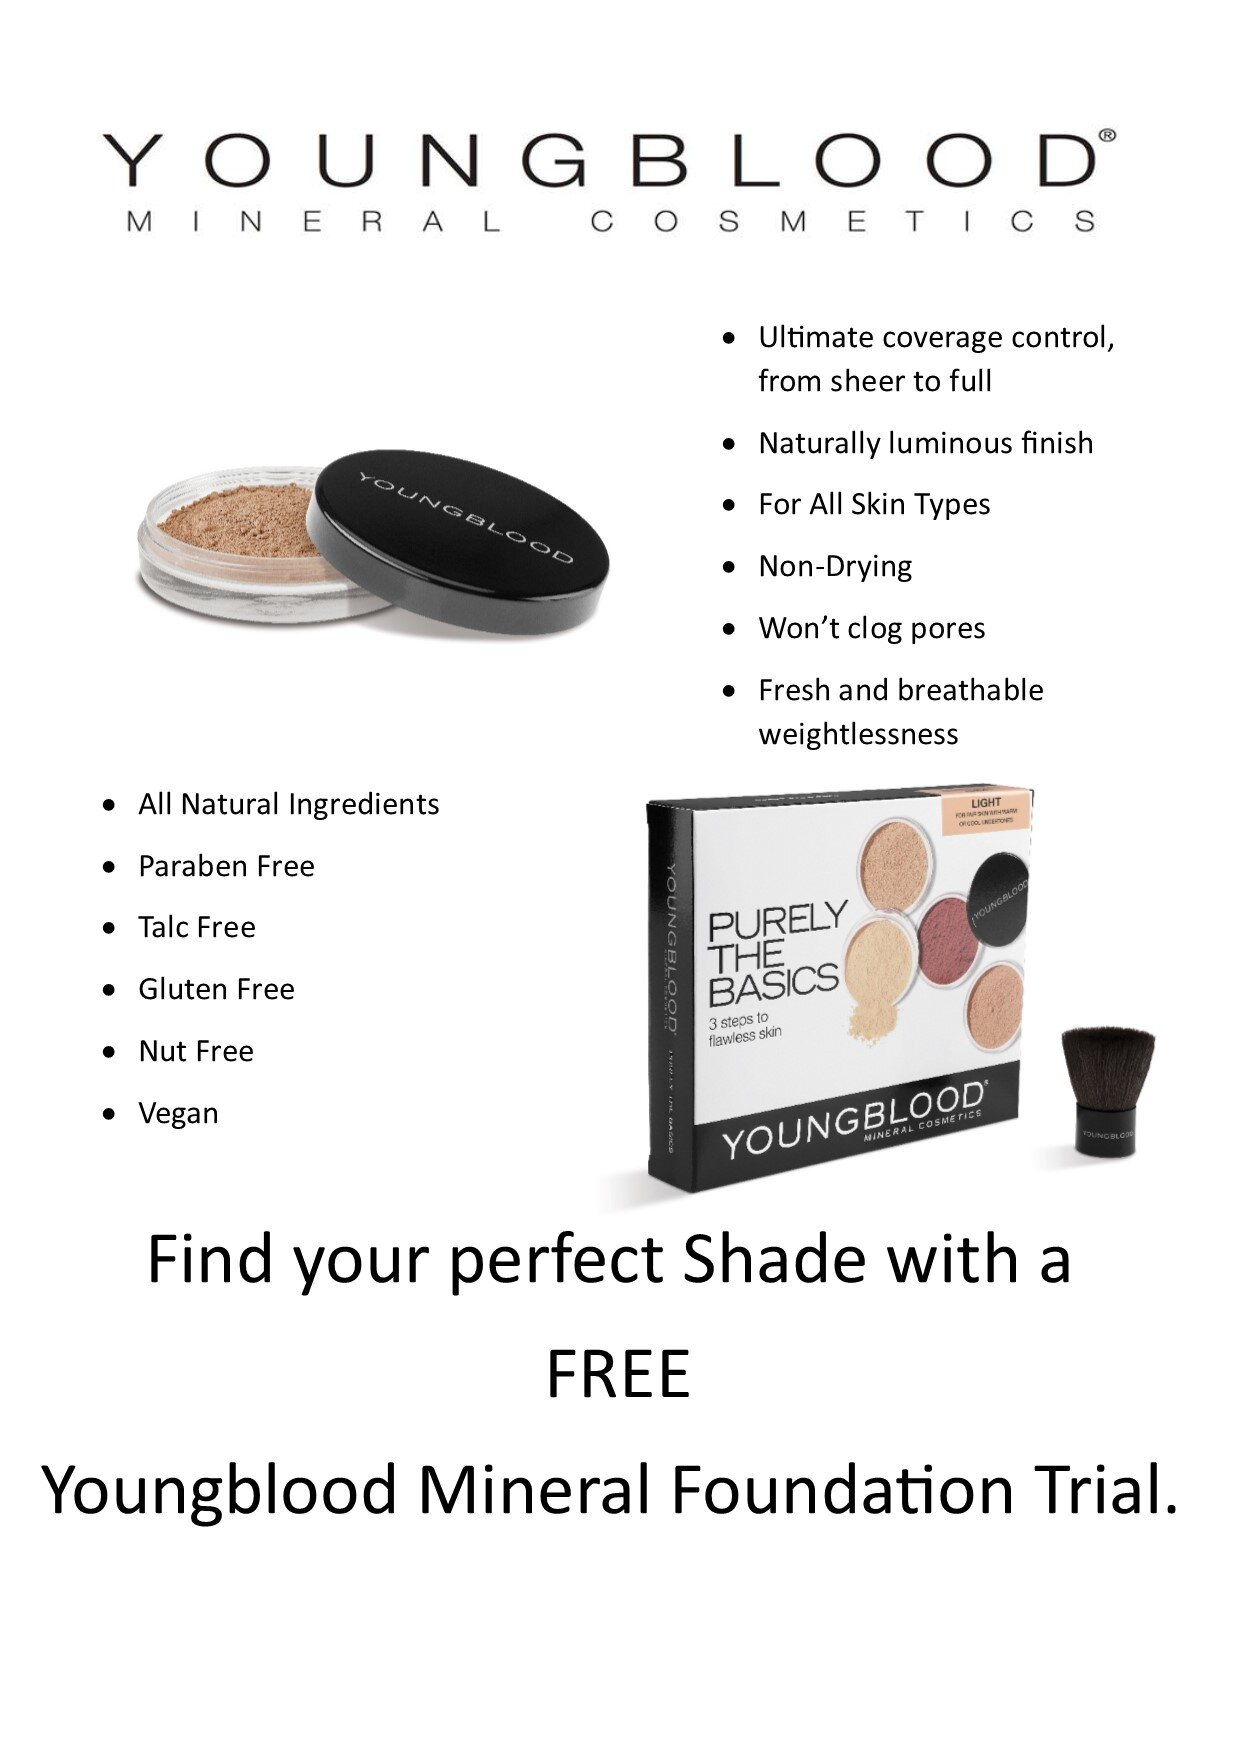 Youngblood Mineral Foundation - Find your perfect Shade with a free Colour match and trial.Call: 01743 885222Email: Koalasbeauty@gmail.comFor appointment availability.